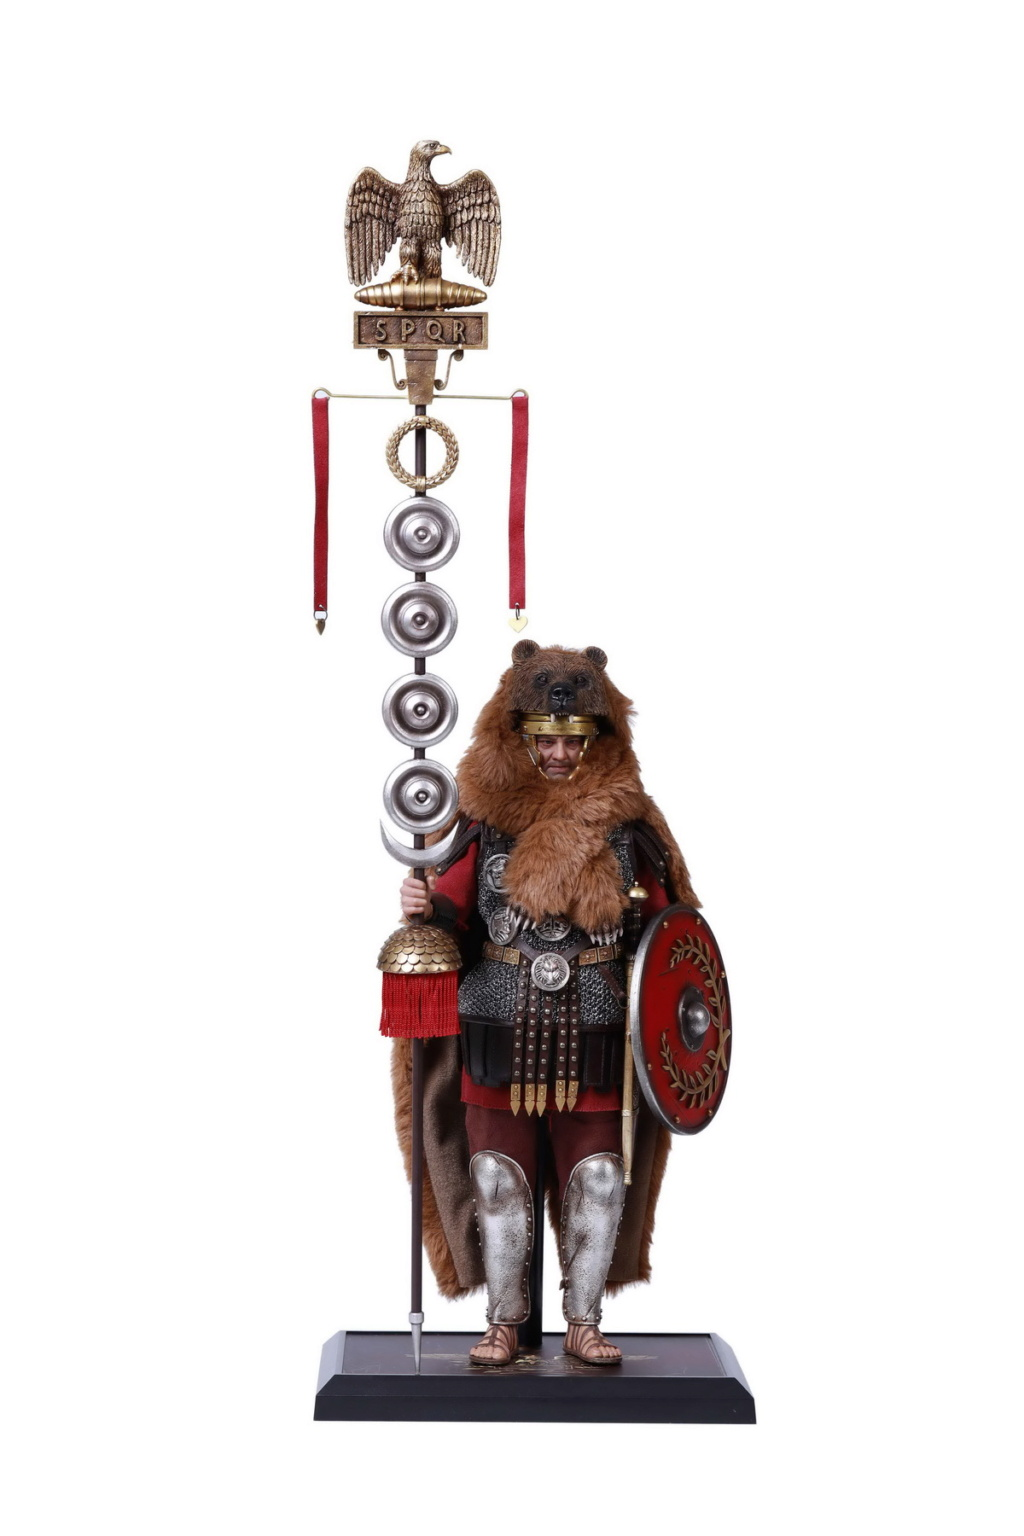 HHModel - NEW PRODUCT: HHMODEL & HAOYUTOYS New product: 1/6 Rome - Camp Flag Bearer Action Figure (#HH18020) 15140310